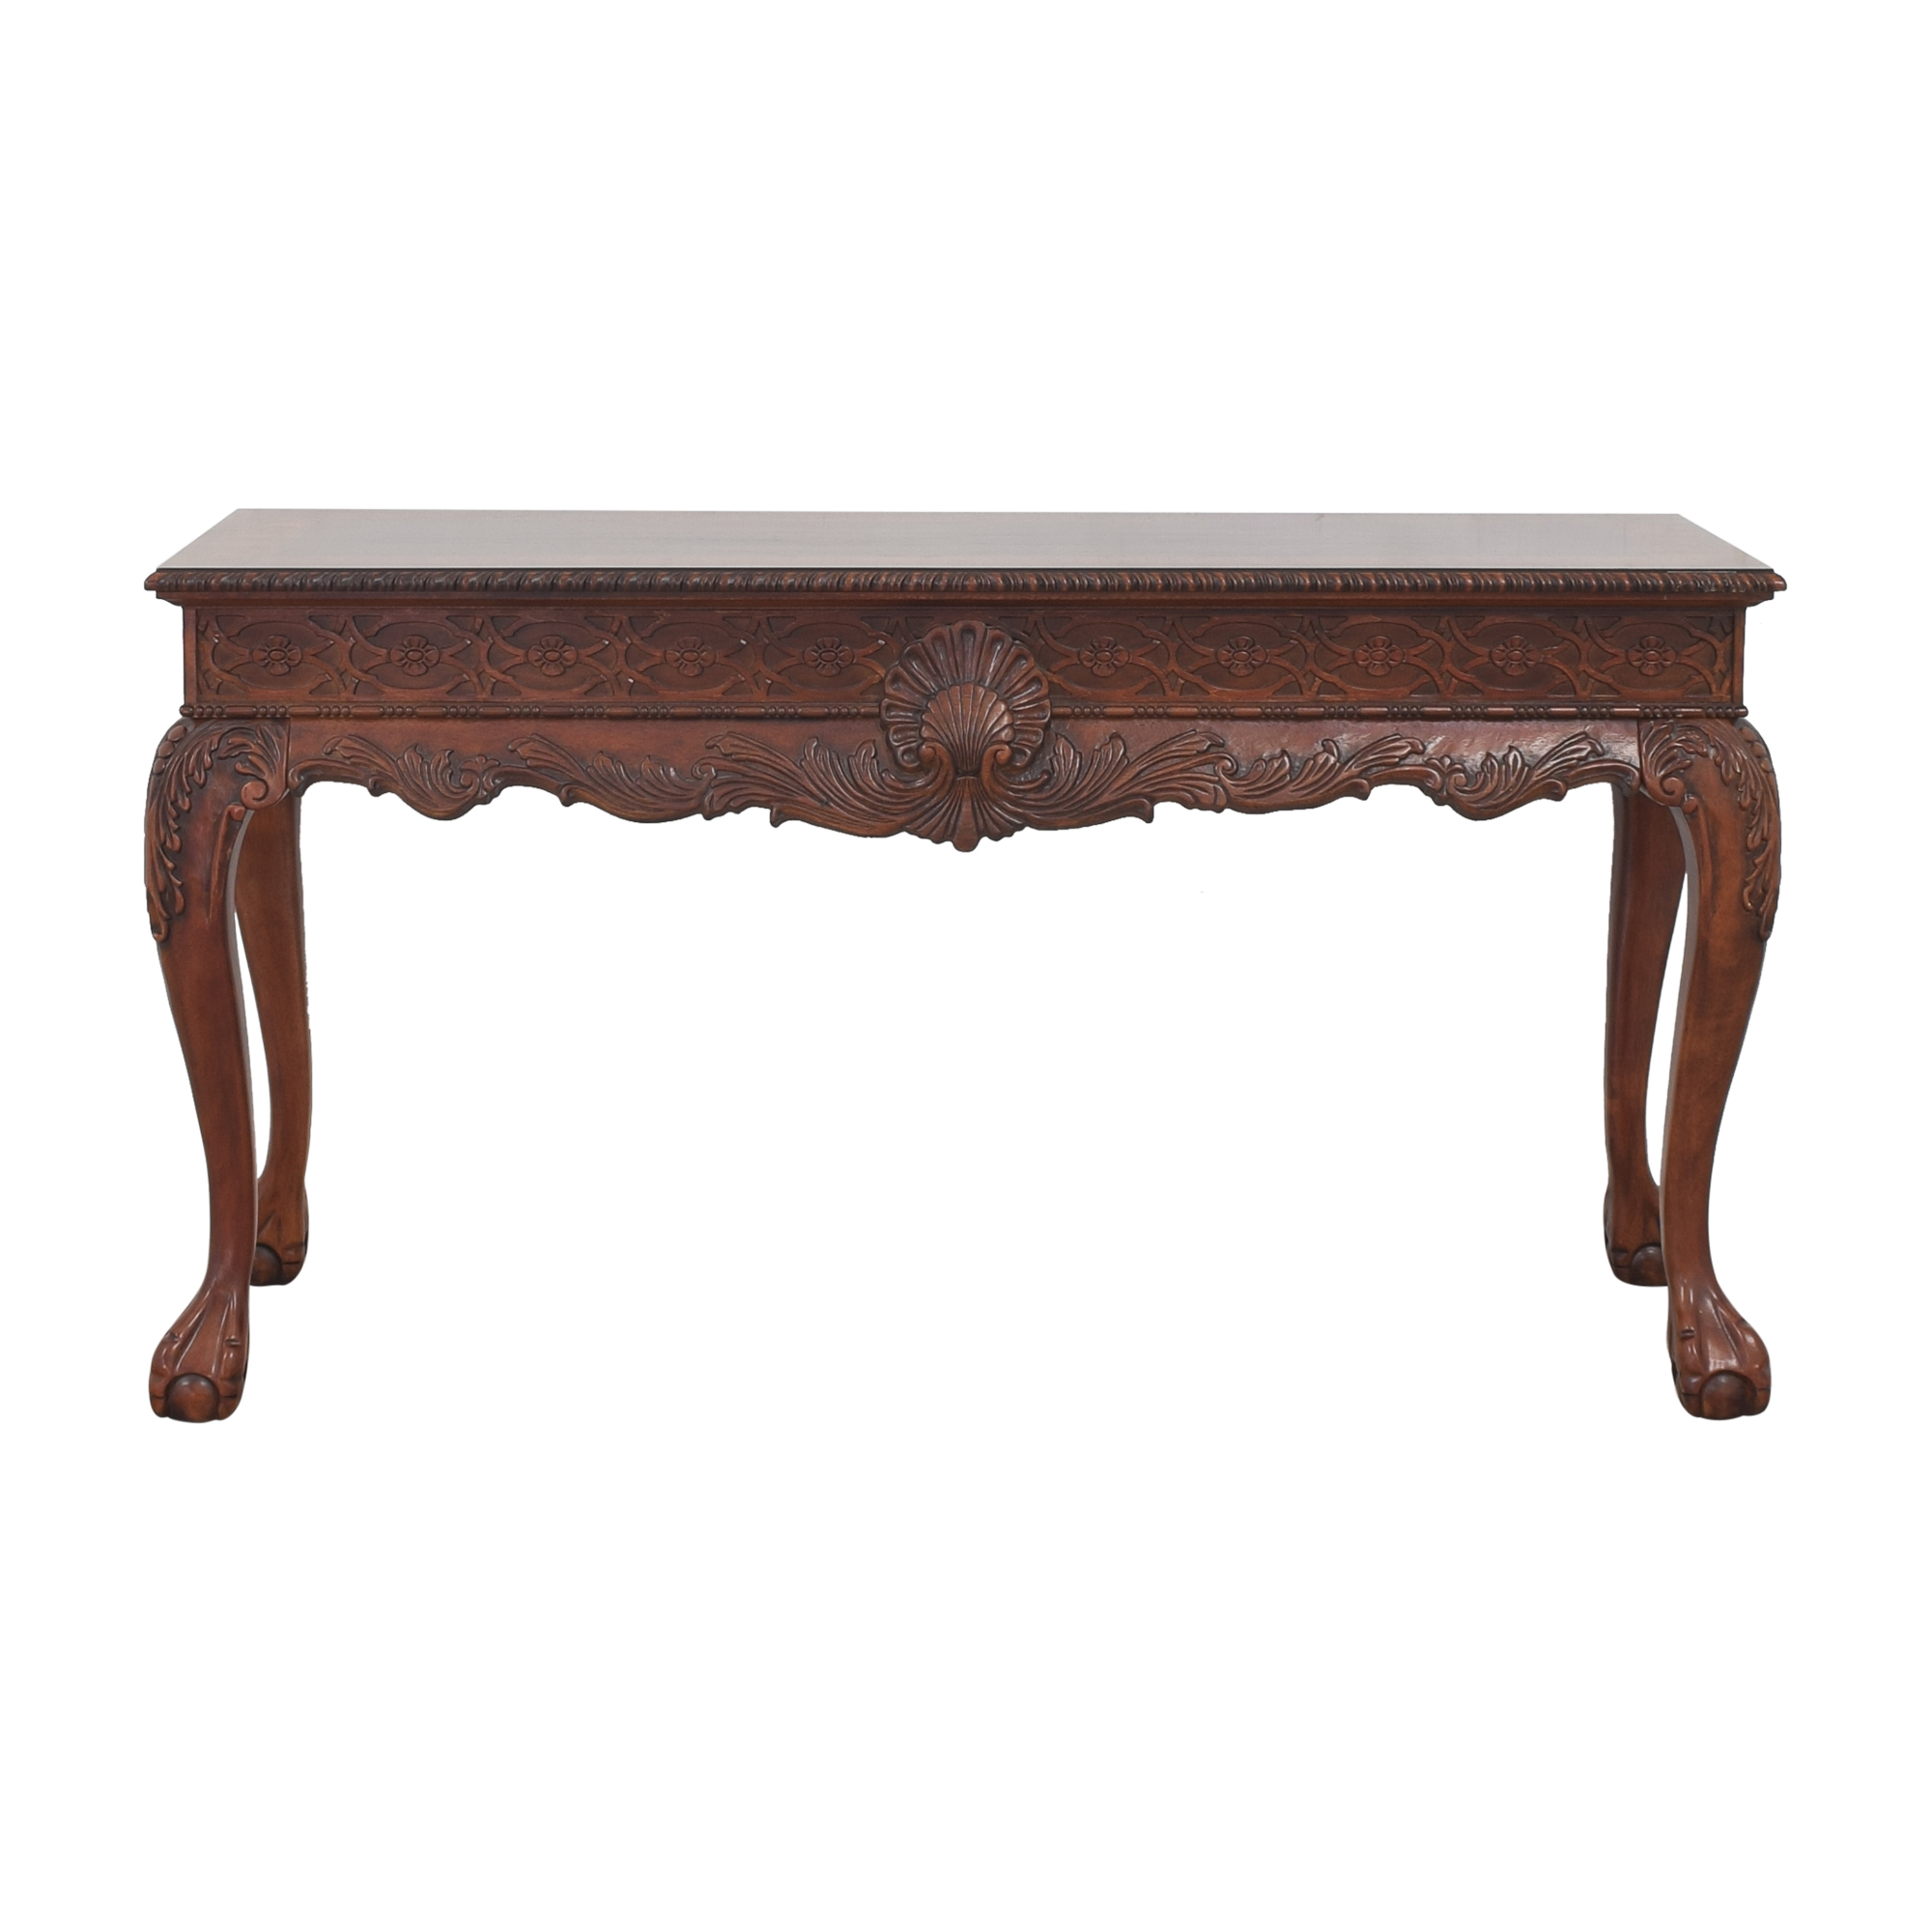 Macy's Macy's Carved Accent Table brown